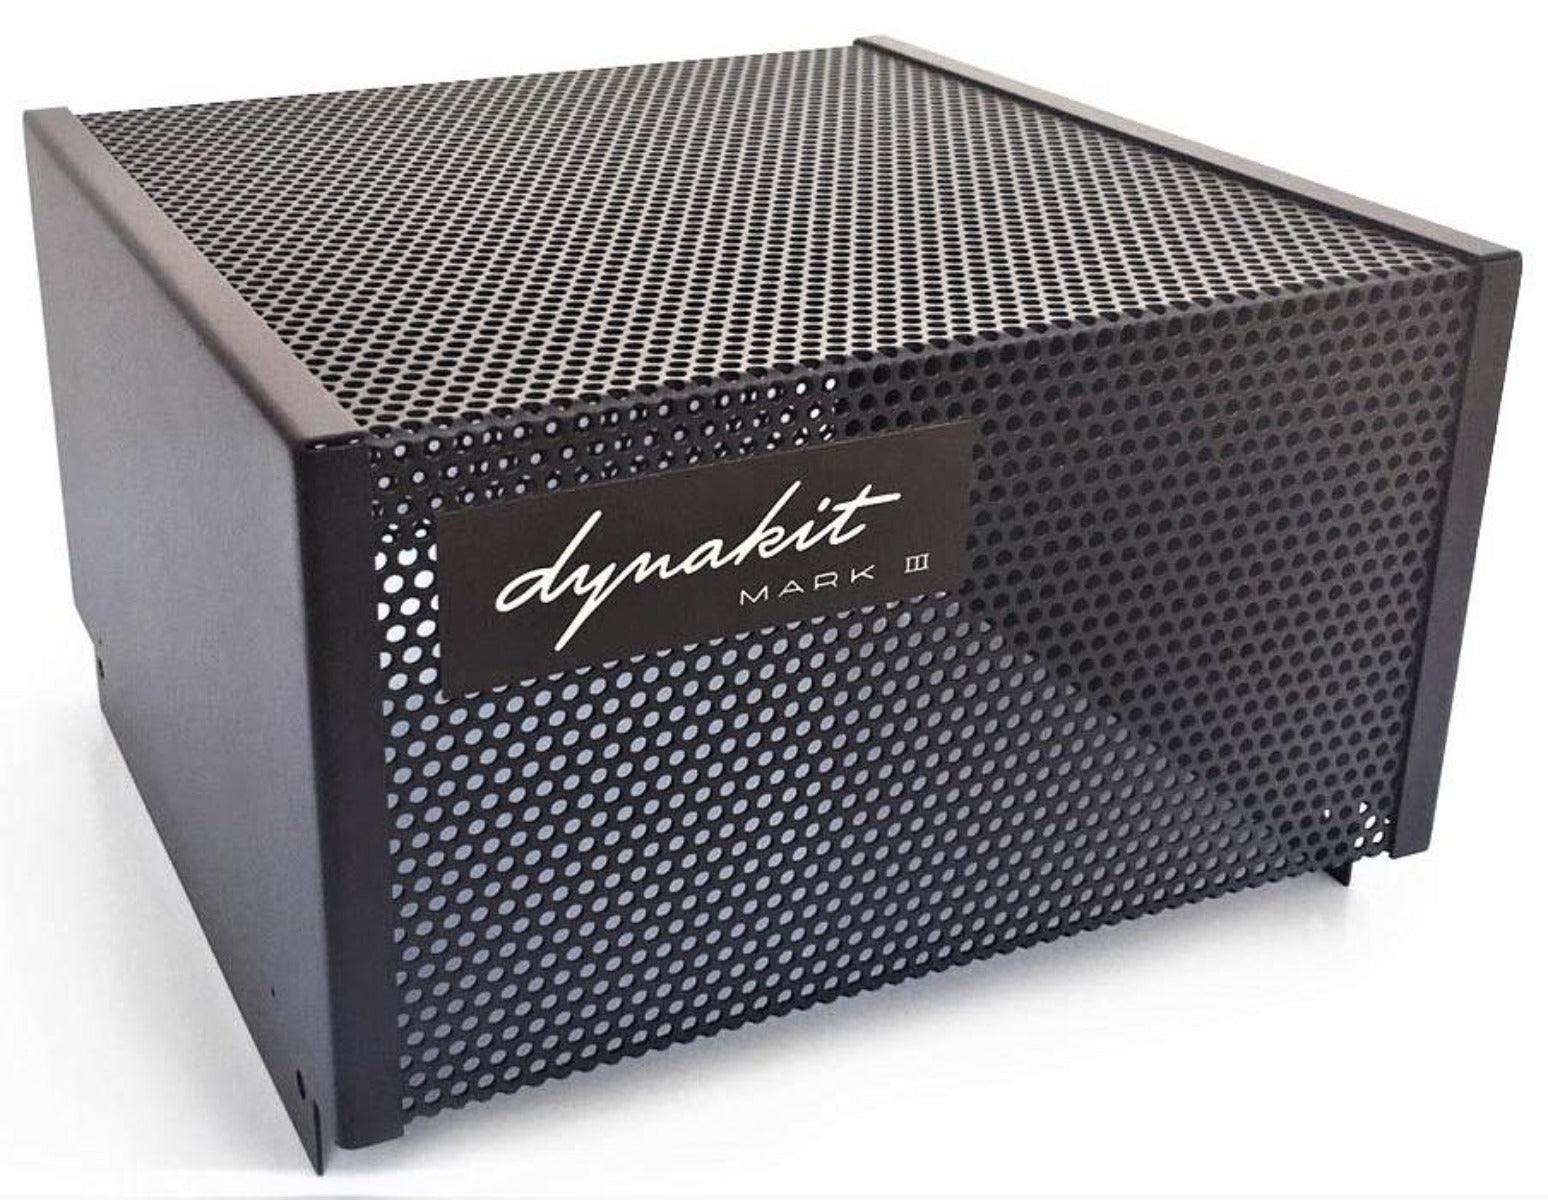 Dynaco / Dynakit Amplifiers & Preamps New, Custom, Hand Built, Build to Order, PAS, PAT, ST70, ST-70, Stereo 70, 35, 120, MKIII For Sale